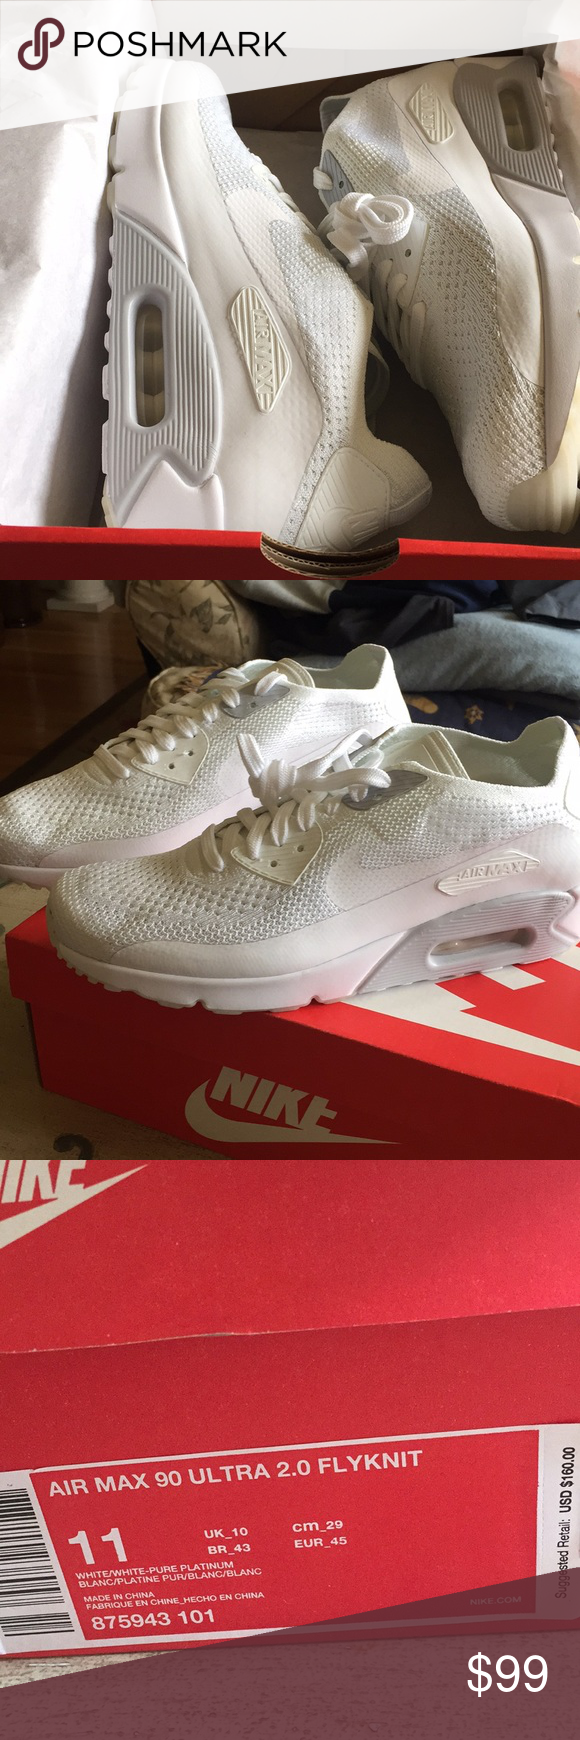 finest selection 51d27 acd07 Nike air max 90 ultra 2.0 flyknit white size 11